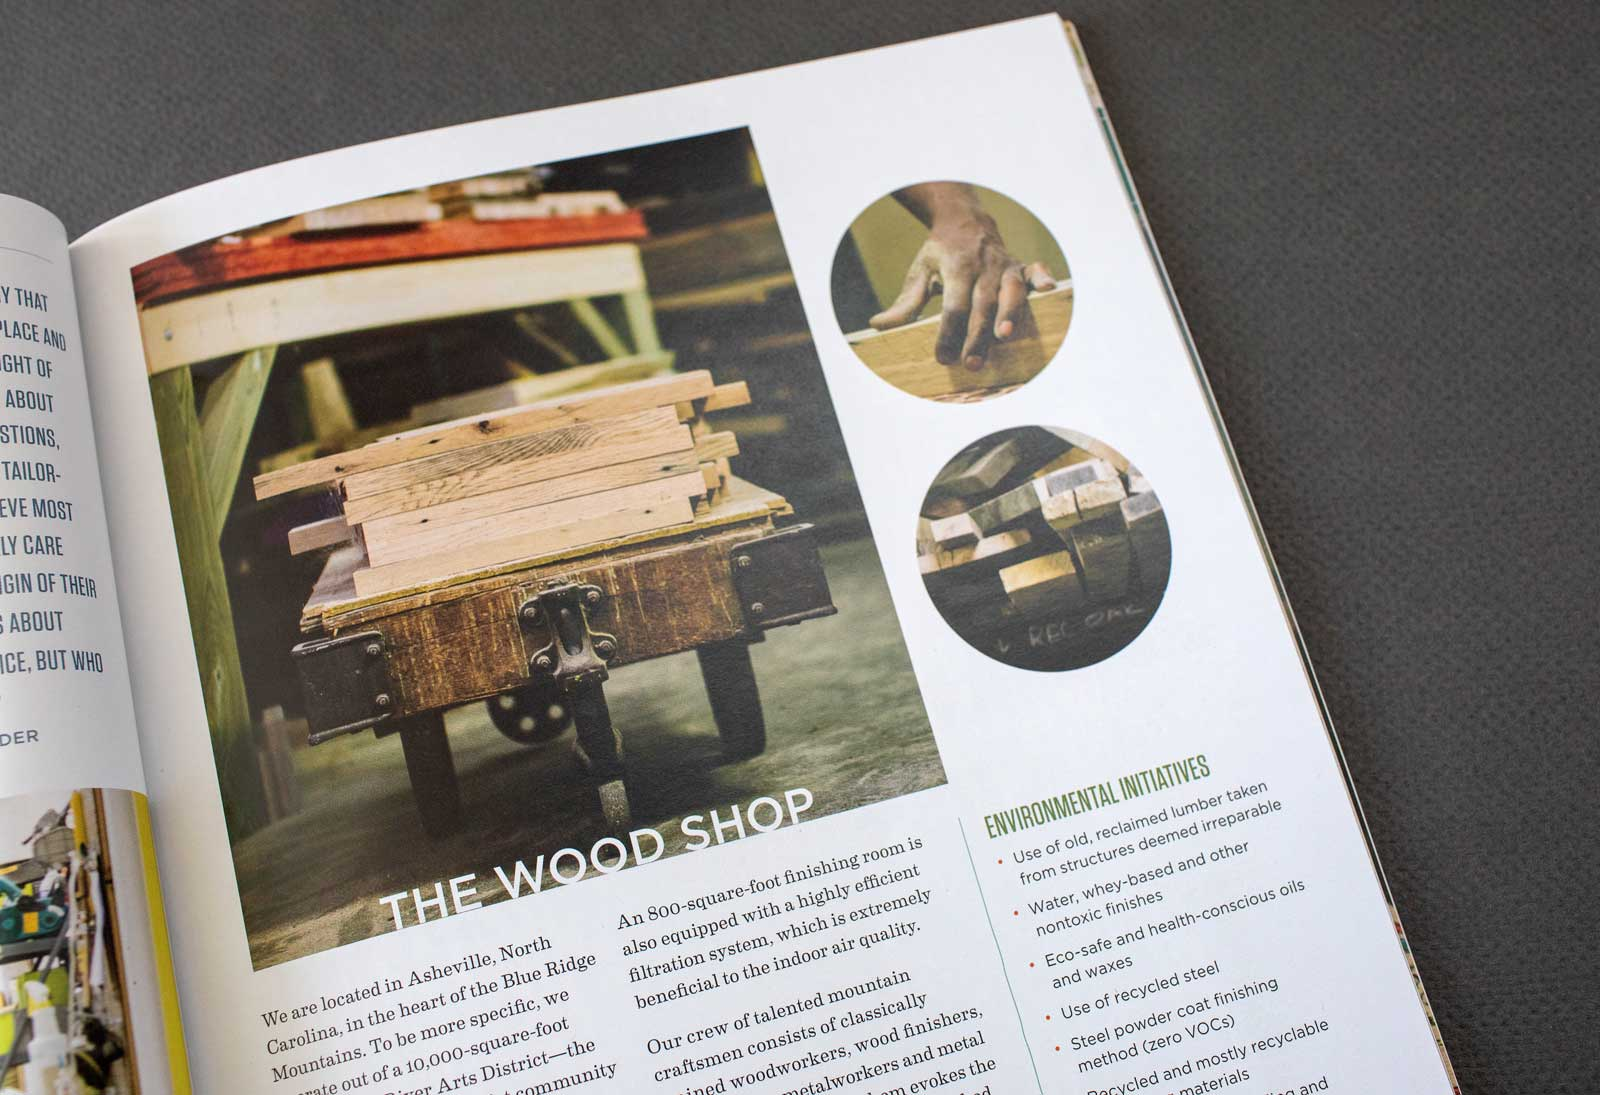 Old Wood Furniture Company cropped catalog spread shows images of the work shop